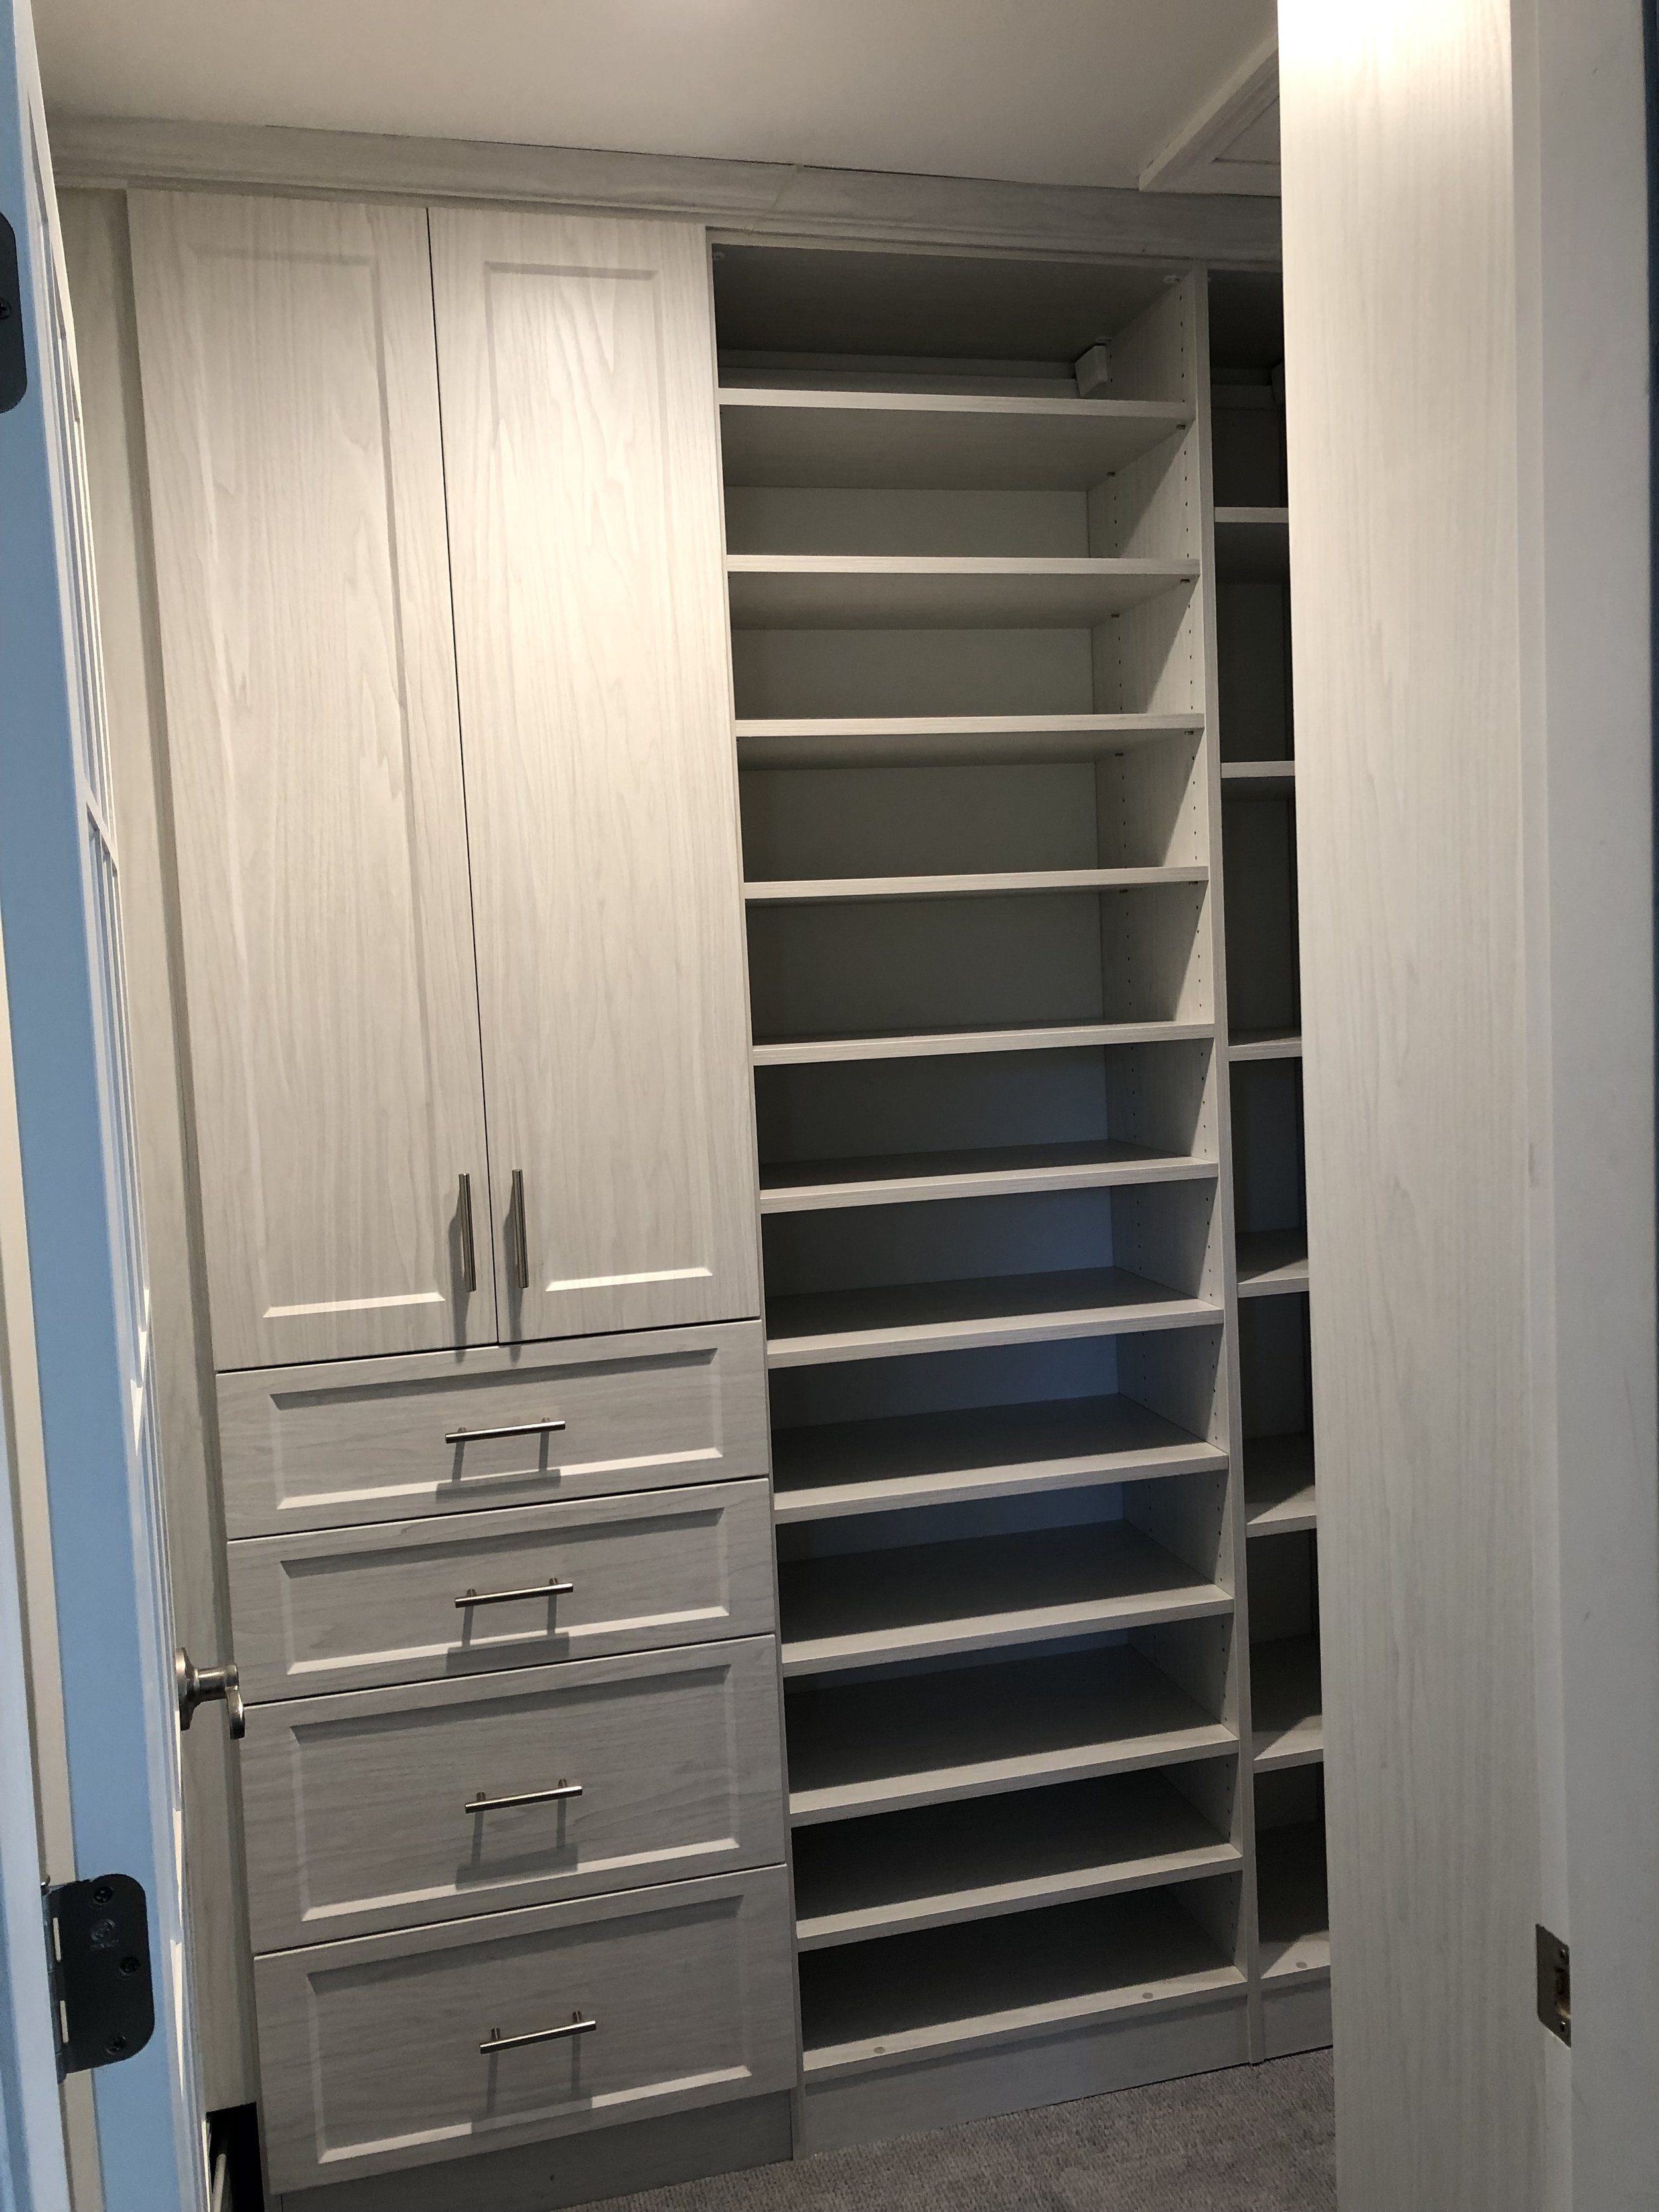 Winter Fun Walk-in with Shaker-style Doors and Shoe shelving